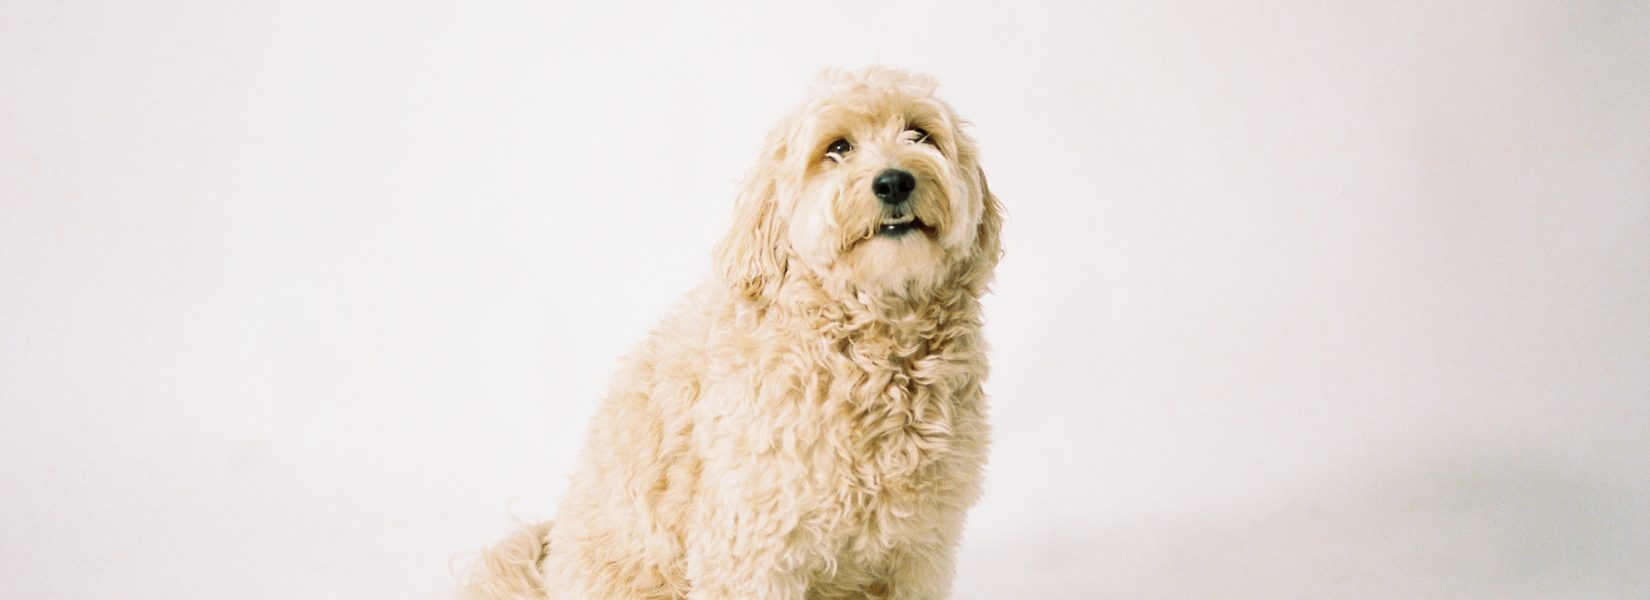 Must Haves for your Goldendoodle – Puppy Supply List